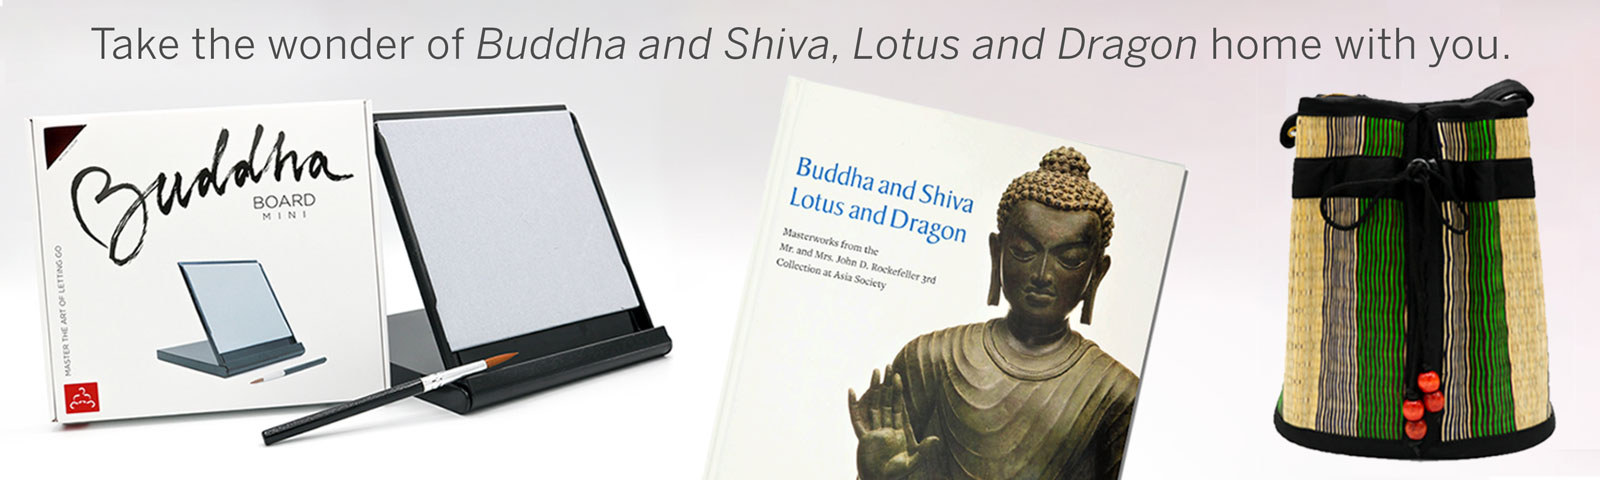 Purchase the catalog and other products displayed in conjunction with the Buddha and Shiva, Lotus and Dragon exhibition!